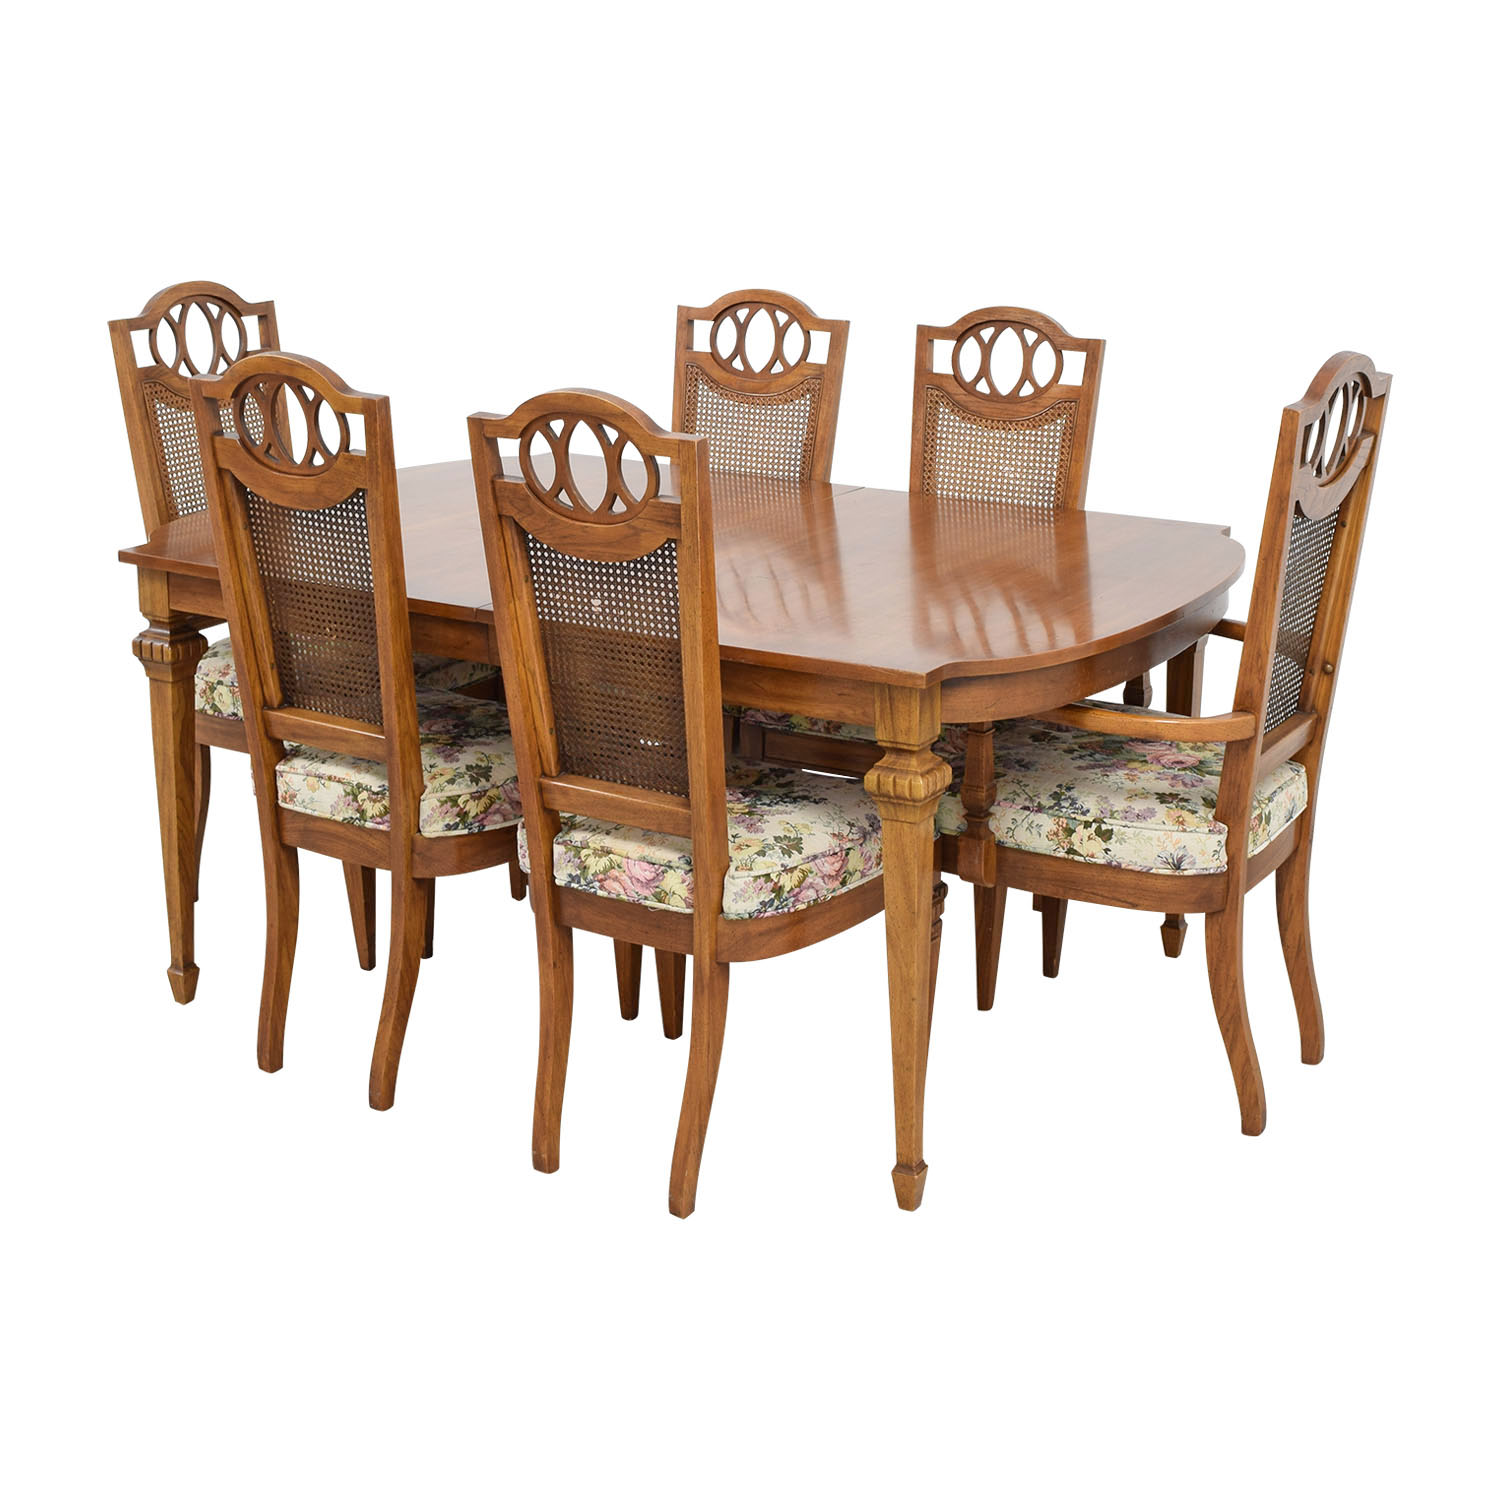 Italian Dining Set with Leaf Extensions and Floral Upholstered Chairs Tables